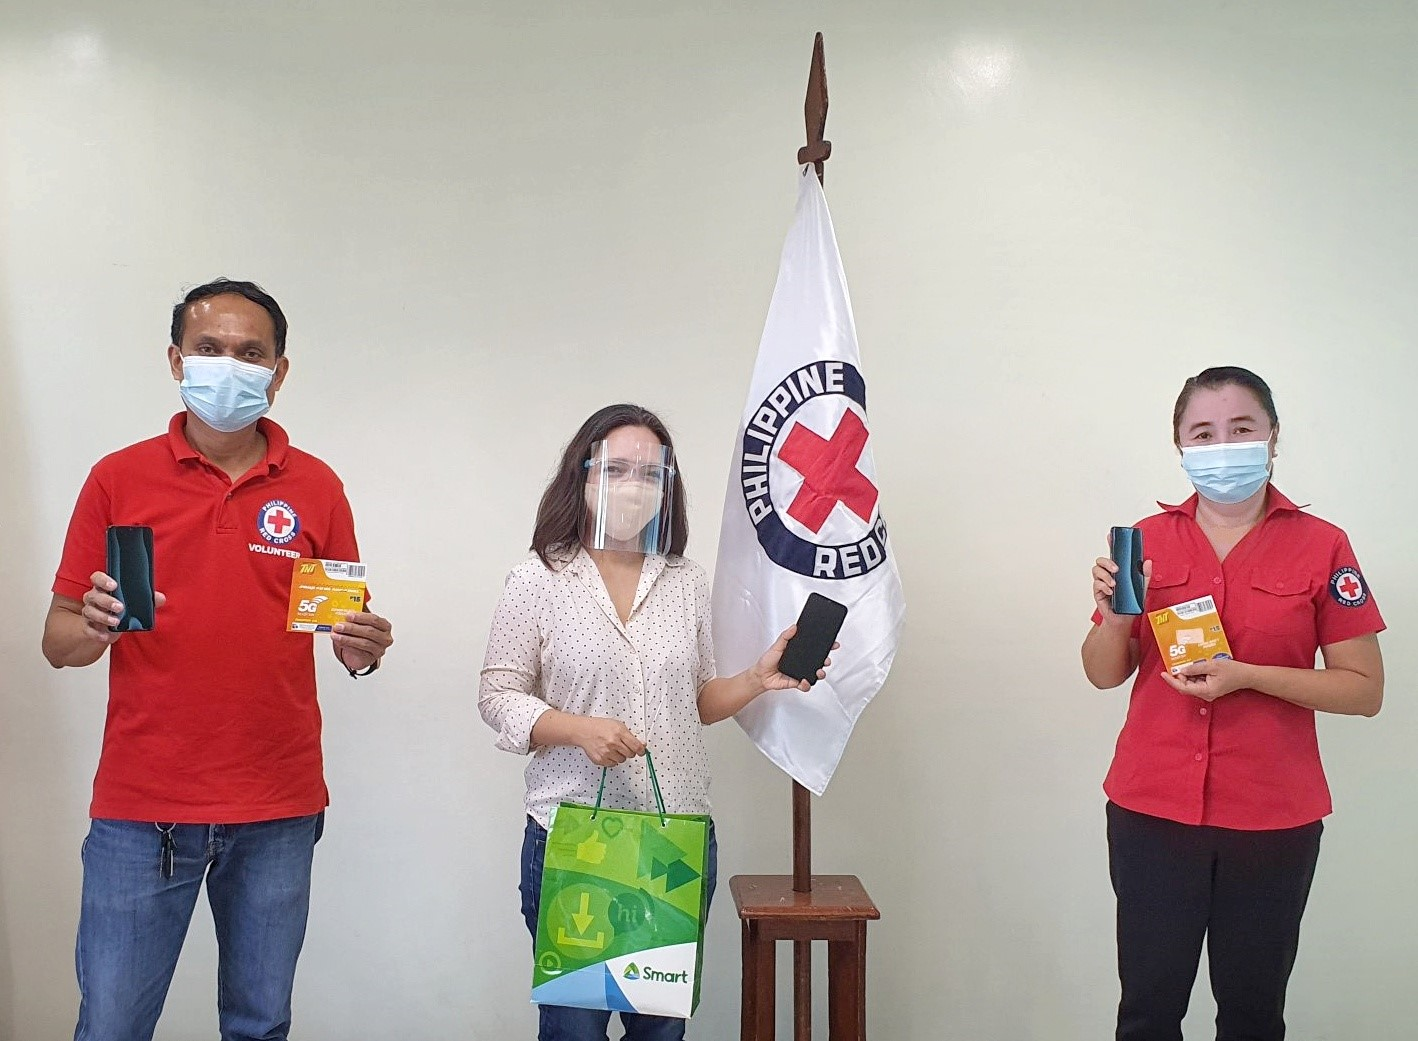 Smart scales up Red Cross-CDO COVID-19 response efforts